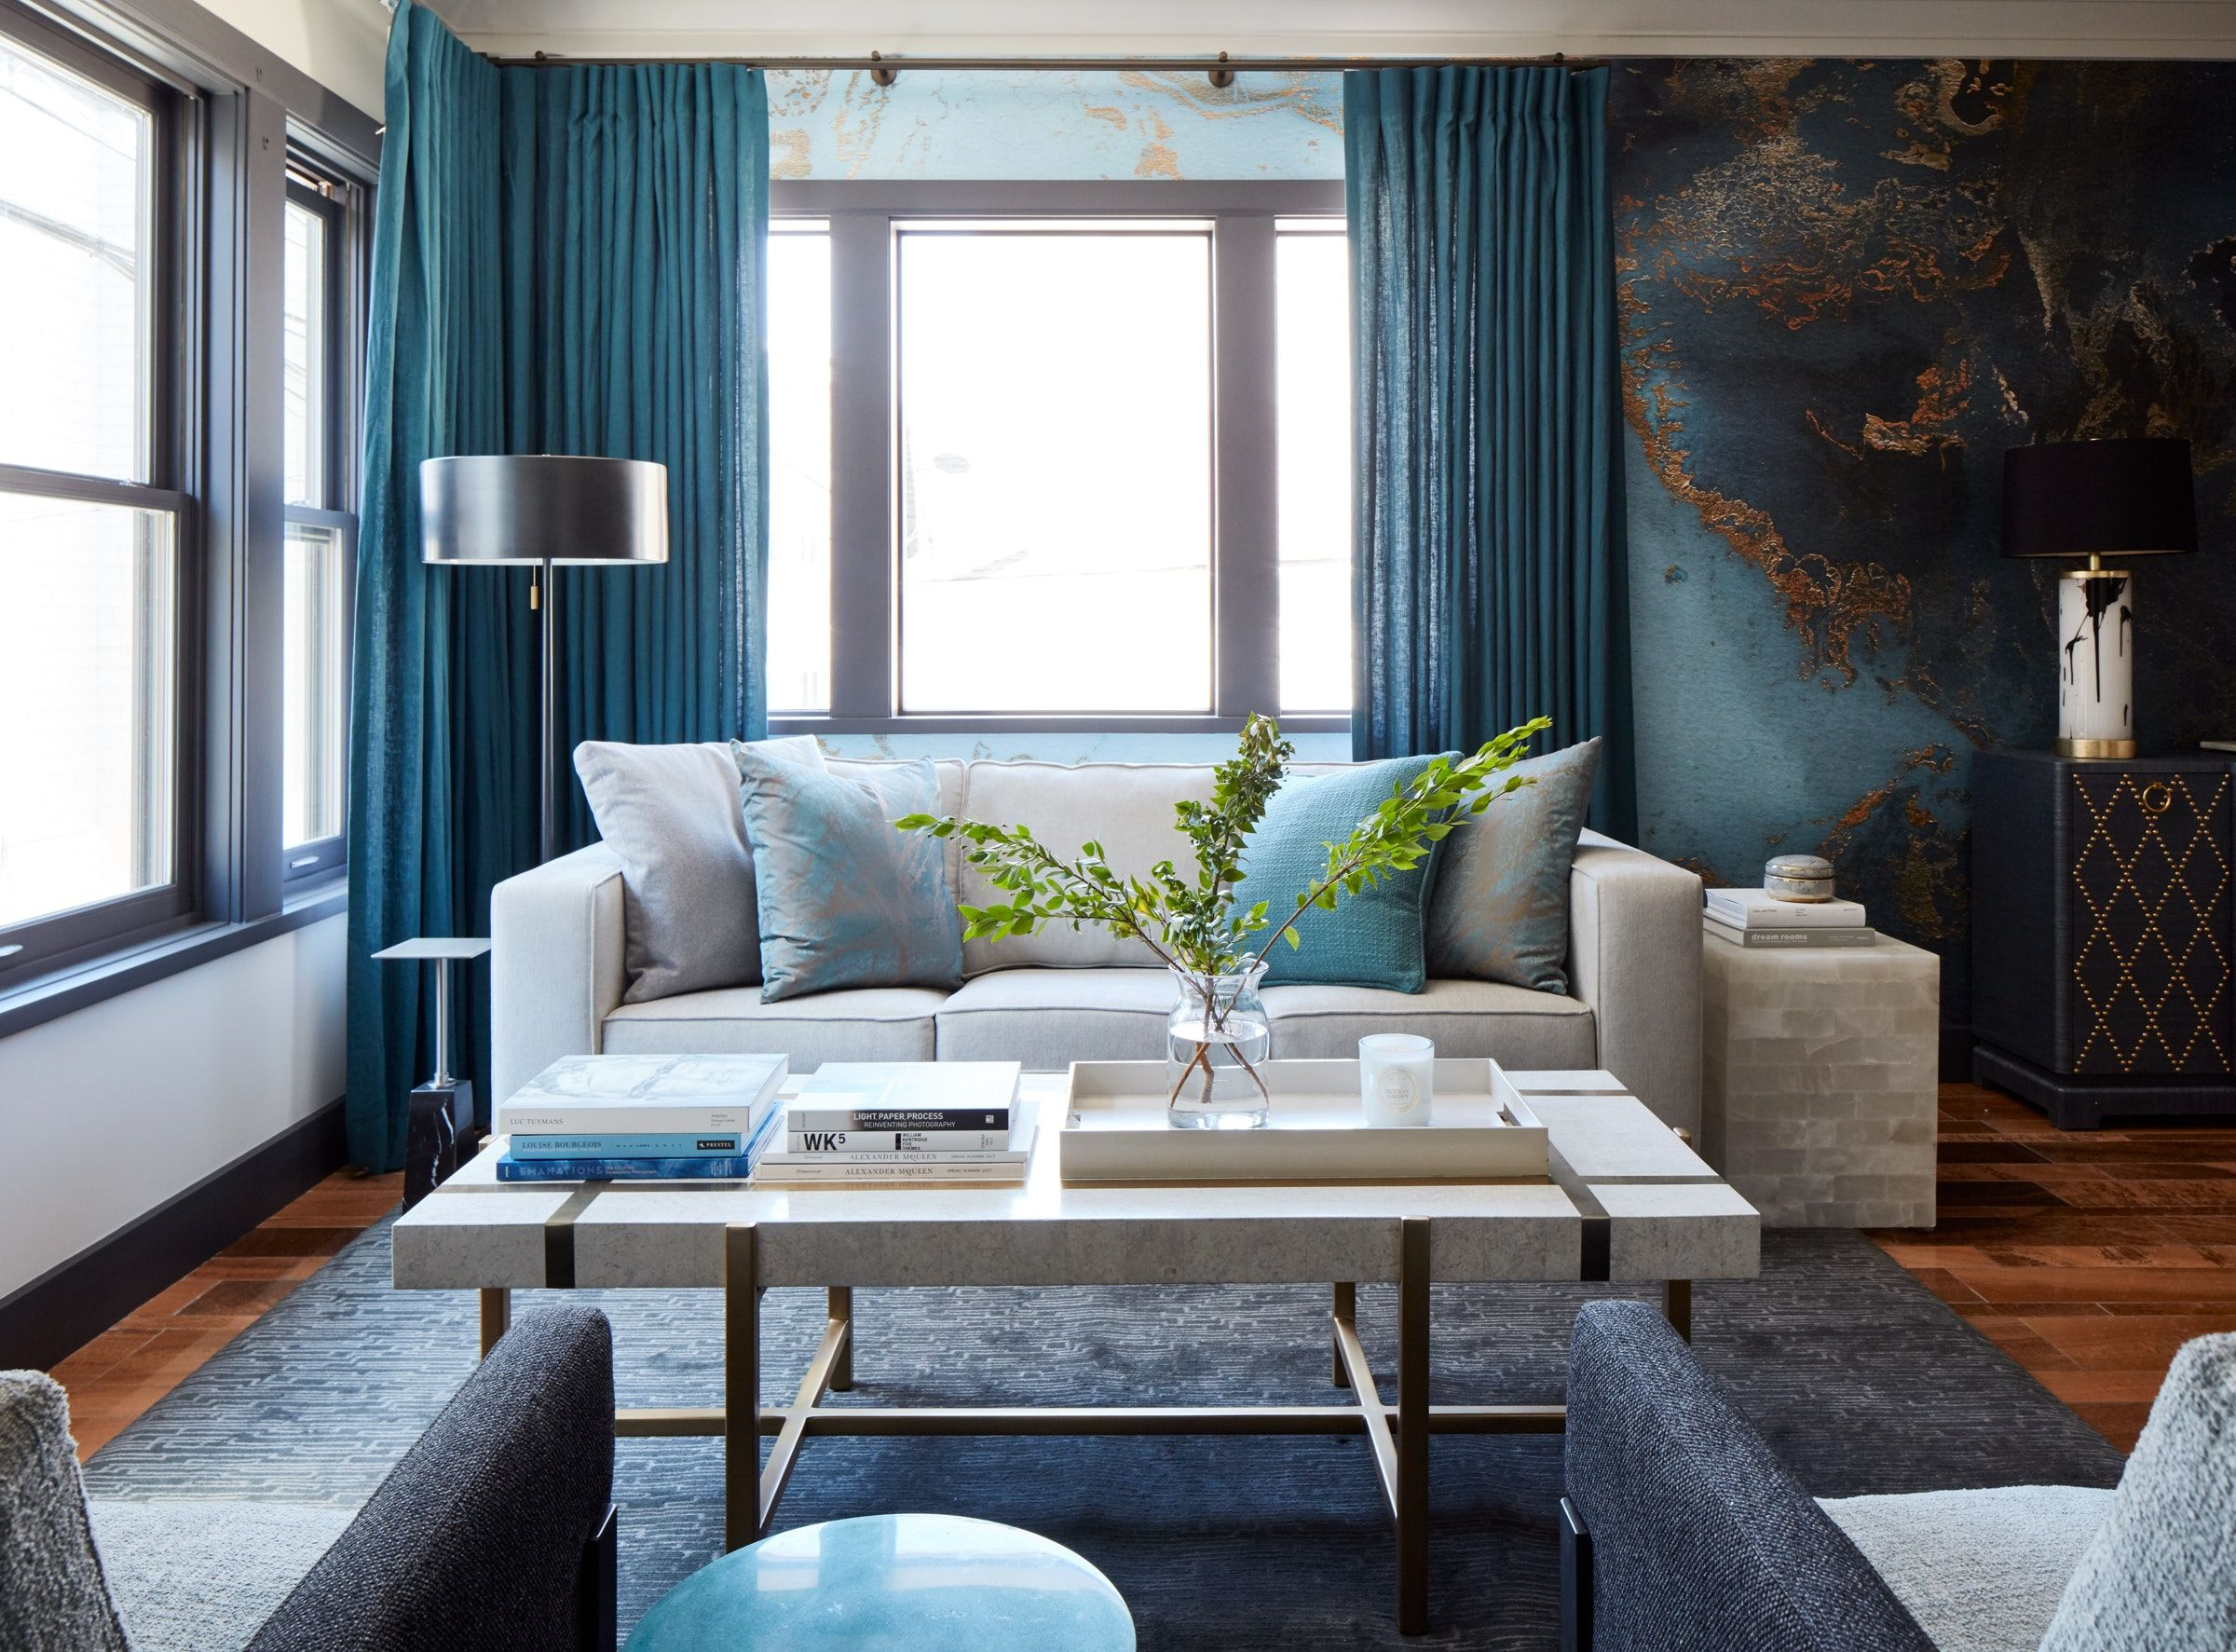 Bright Living Room With Rich Blue And Green Walls And Curtains Room Layout Design Livingroom Layout Small Living Room Layout